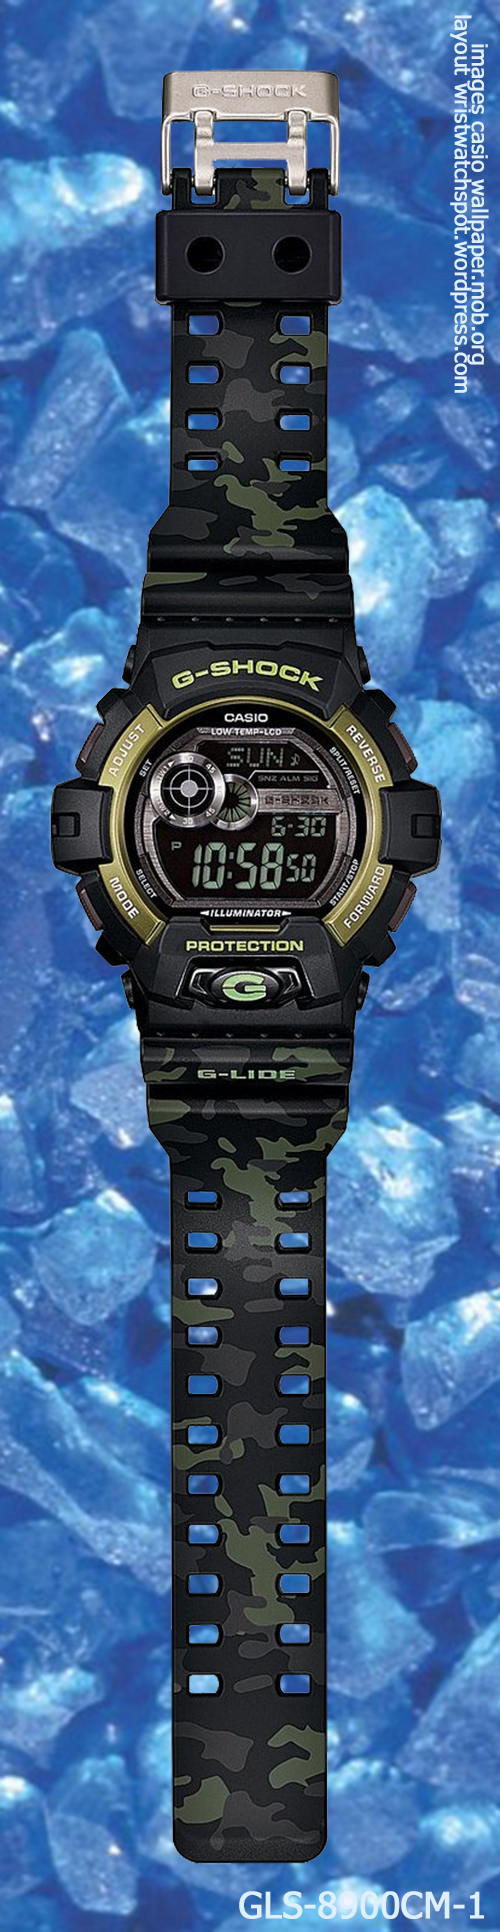 g-shock_gls-8900cm-1_front camouflage 2014 fashion sports black gold